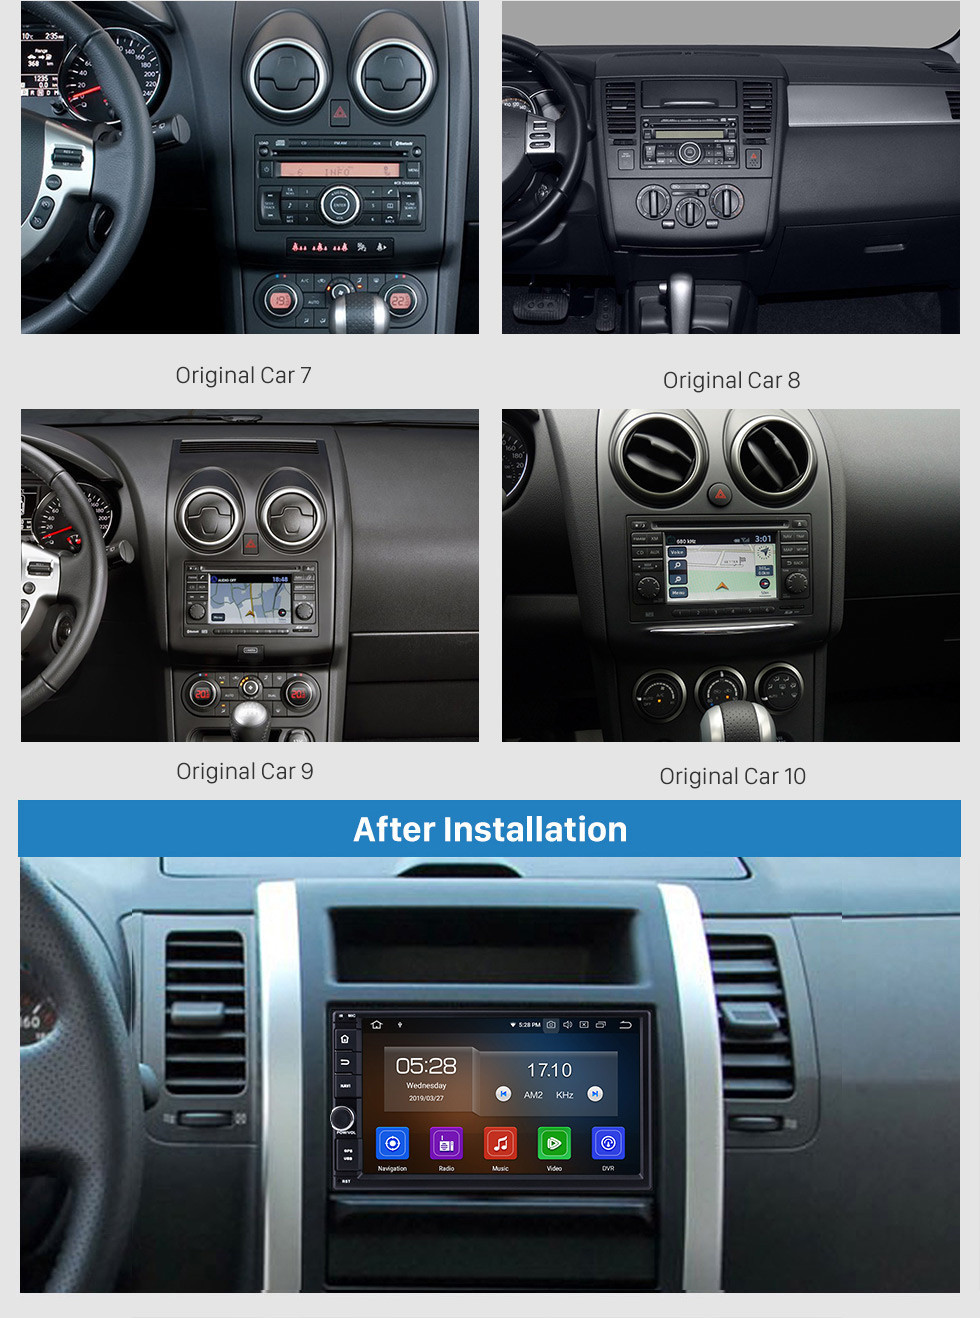 Seicane Hot Selling Android 10.0 2005-2011 Kia rio GPS Navigation Car Audio System Touch Screen AM FM Radio Bluetooth Music 3G WiFi OBD2 Mirror Link AUX Backup Camera USB SD 1080P Video